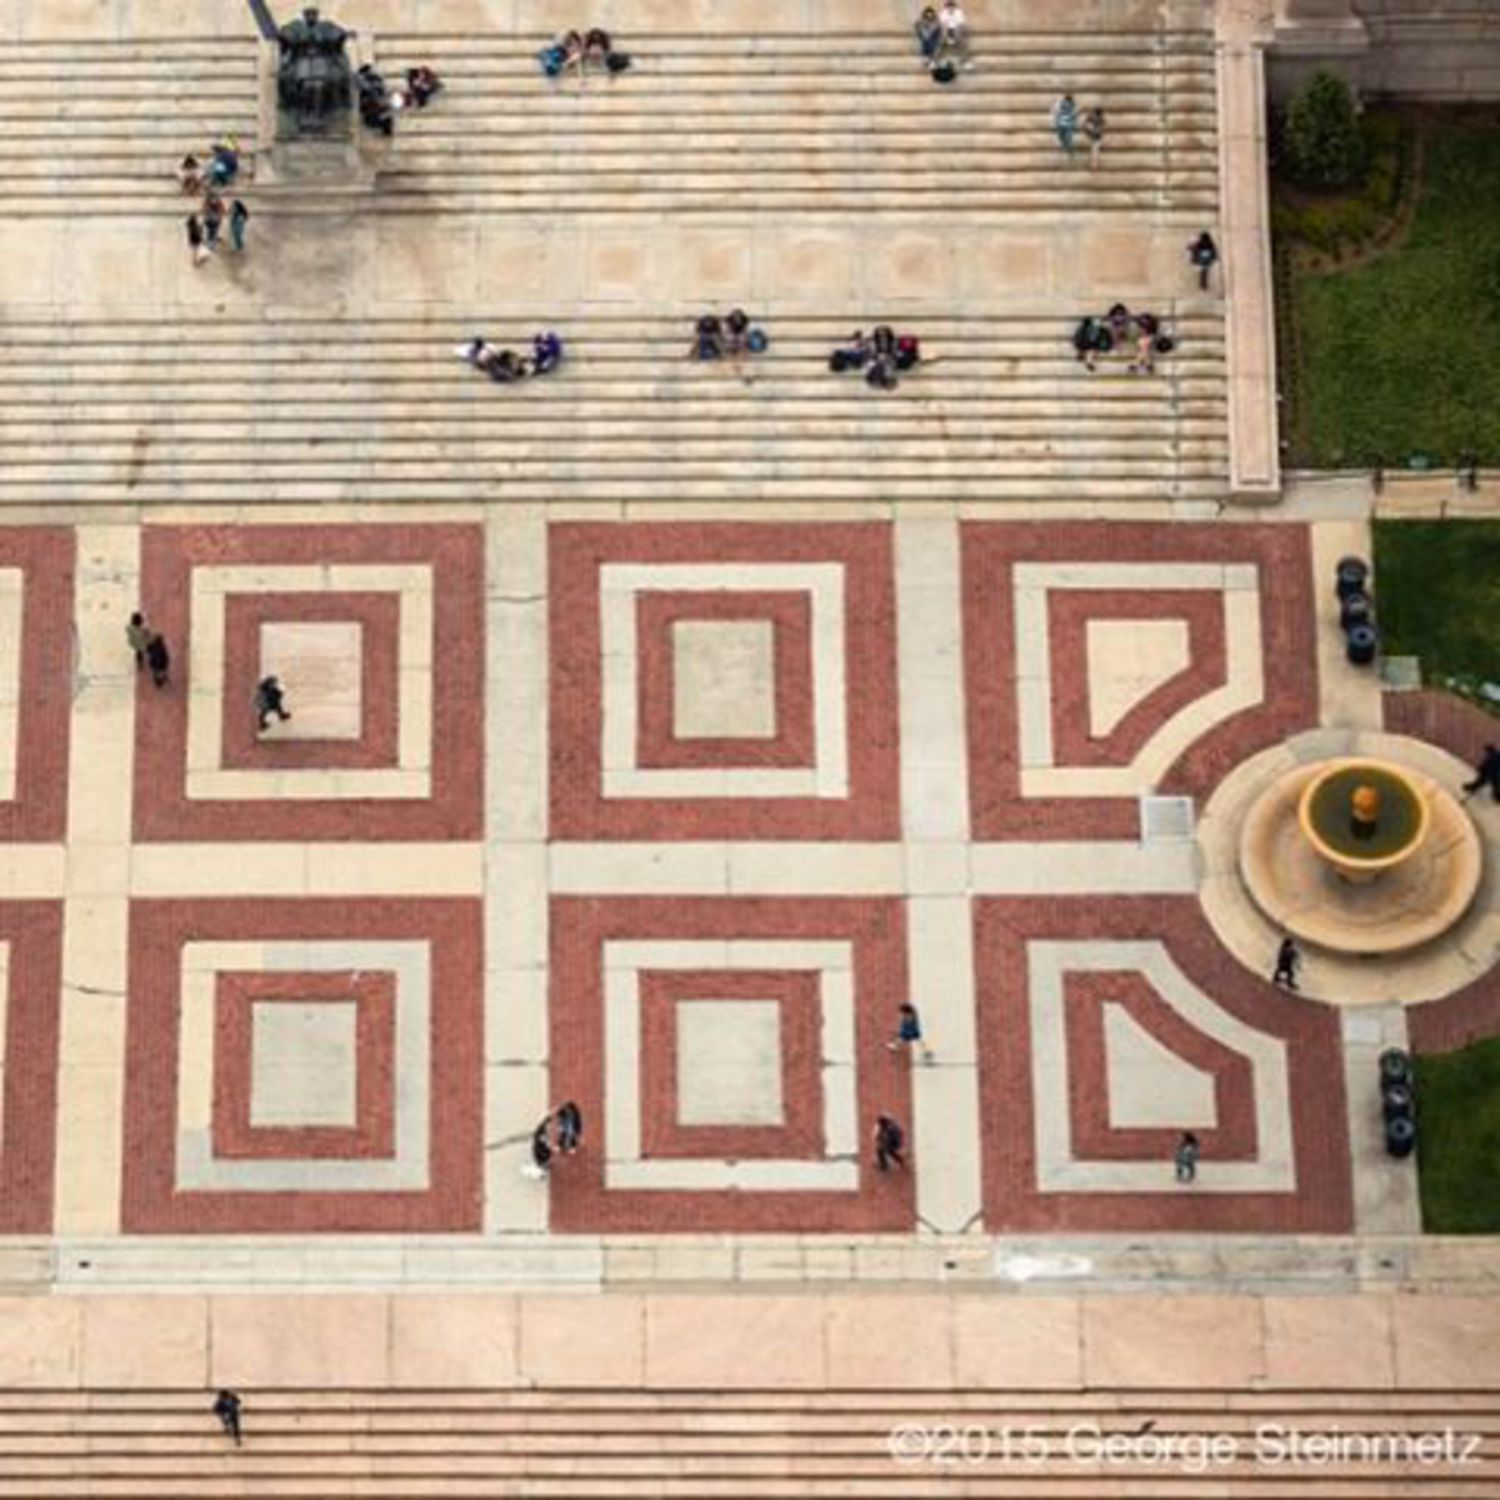 Photograph by George Steinmetz @geosteinmetz / @thephotosociety  The steps from the Low Library to College Walk are a great place to hang out at Columbia University.  The Morningside campus is the turn-of-the century masterpiece by the architectural firm McKim, Mead & White.